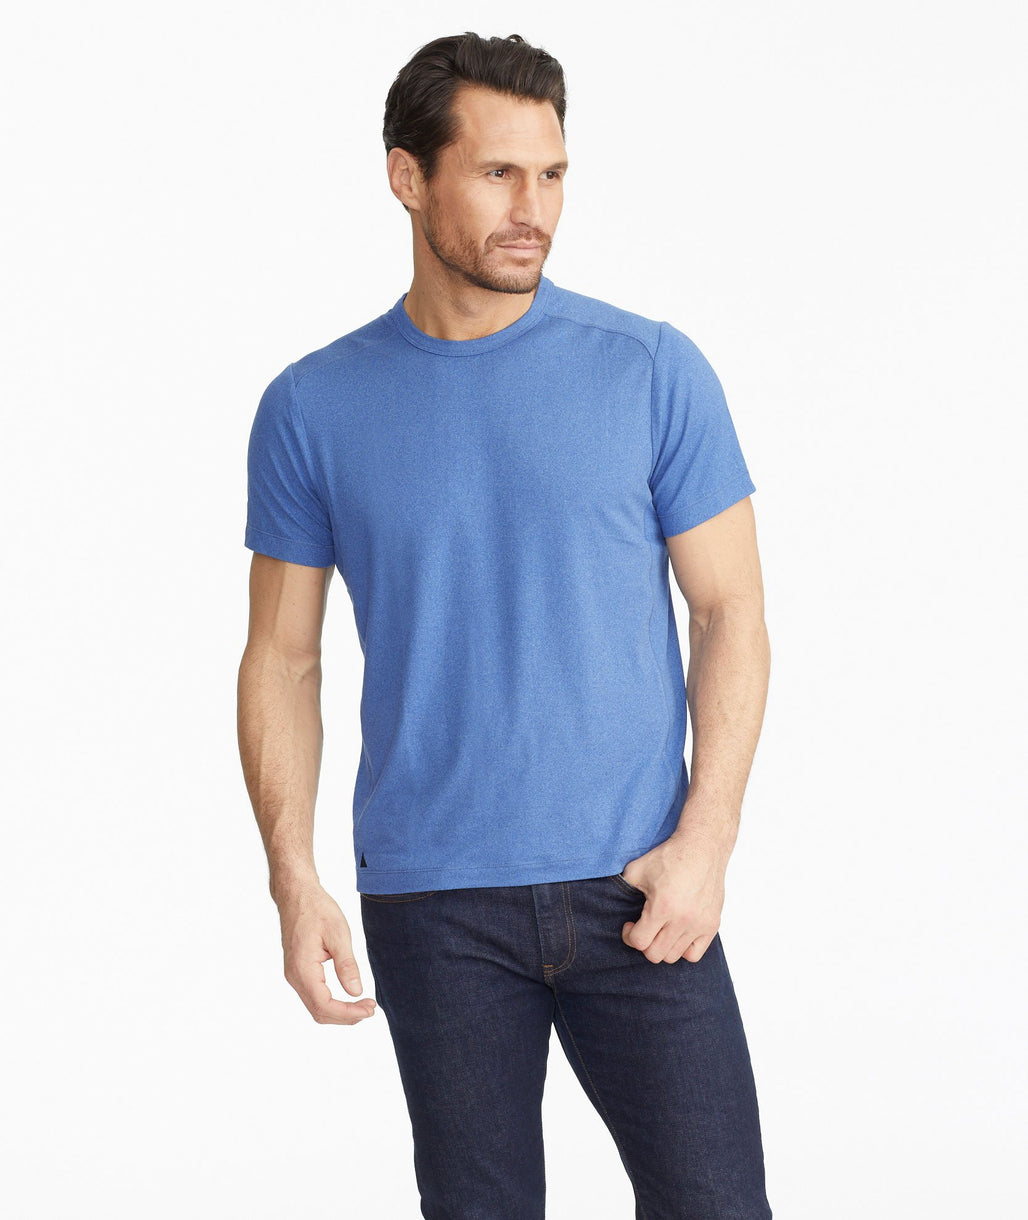 Model wearing a Bright Blue The Performance Tee